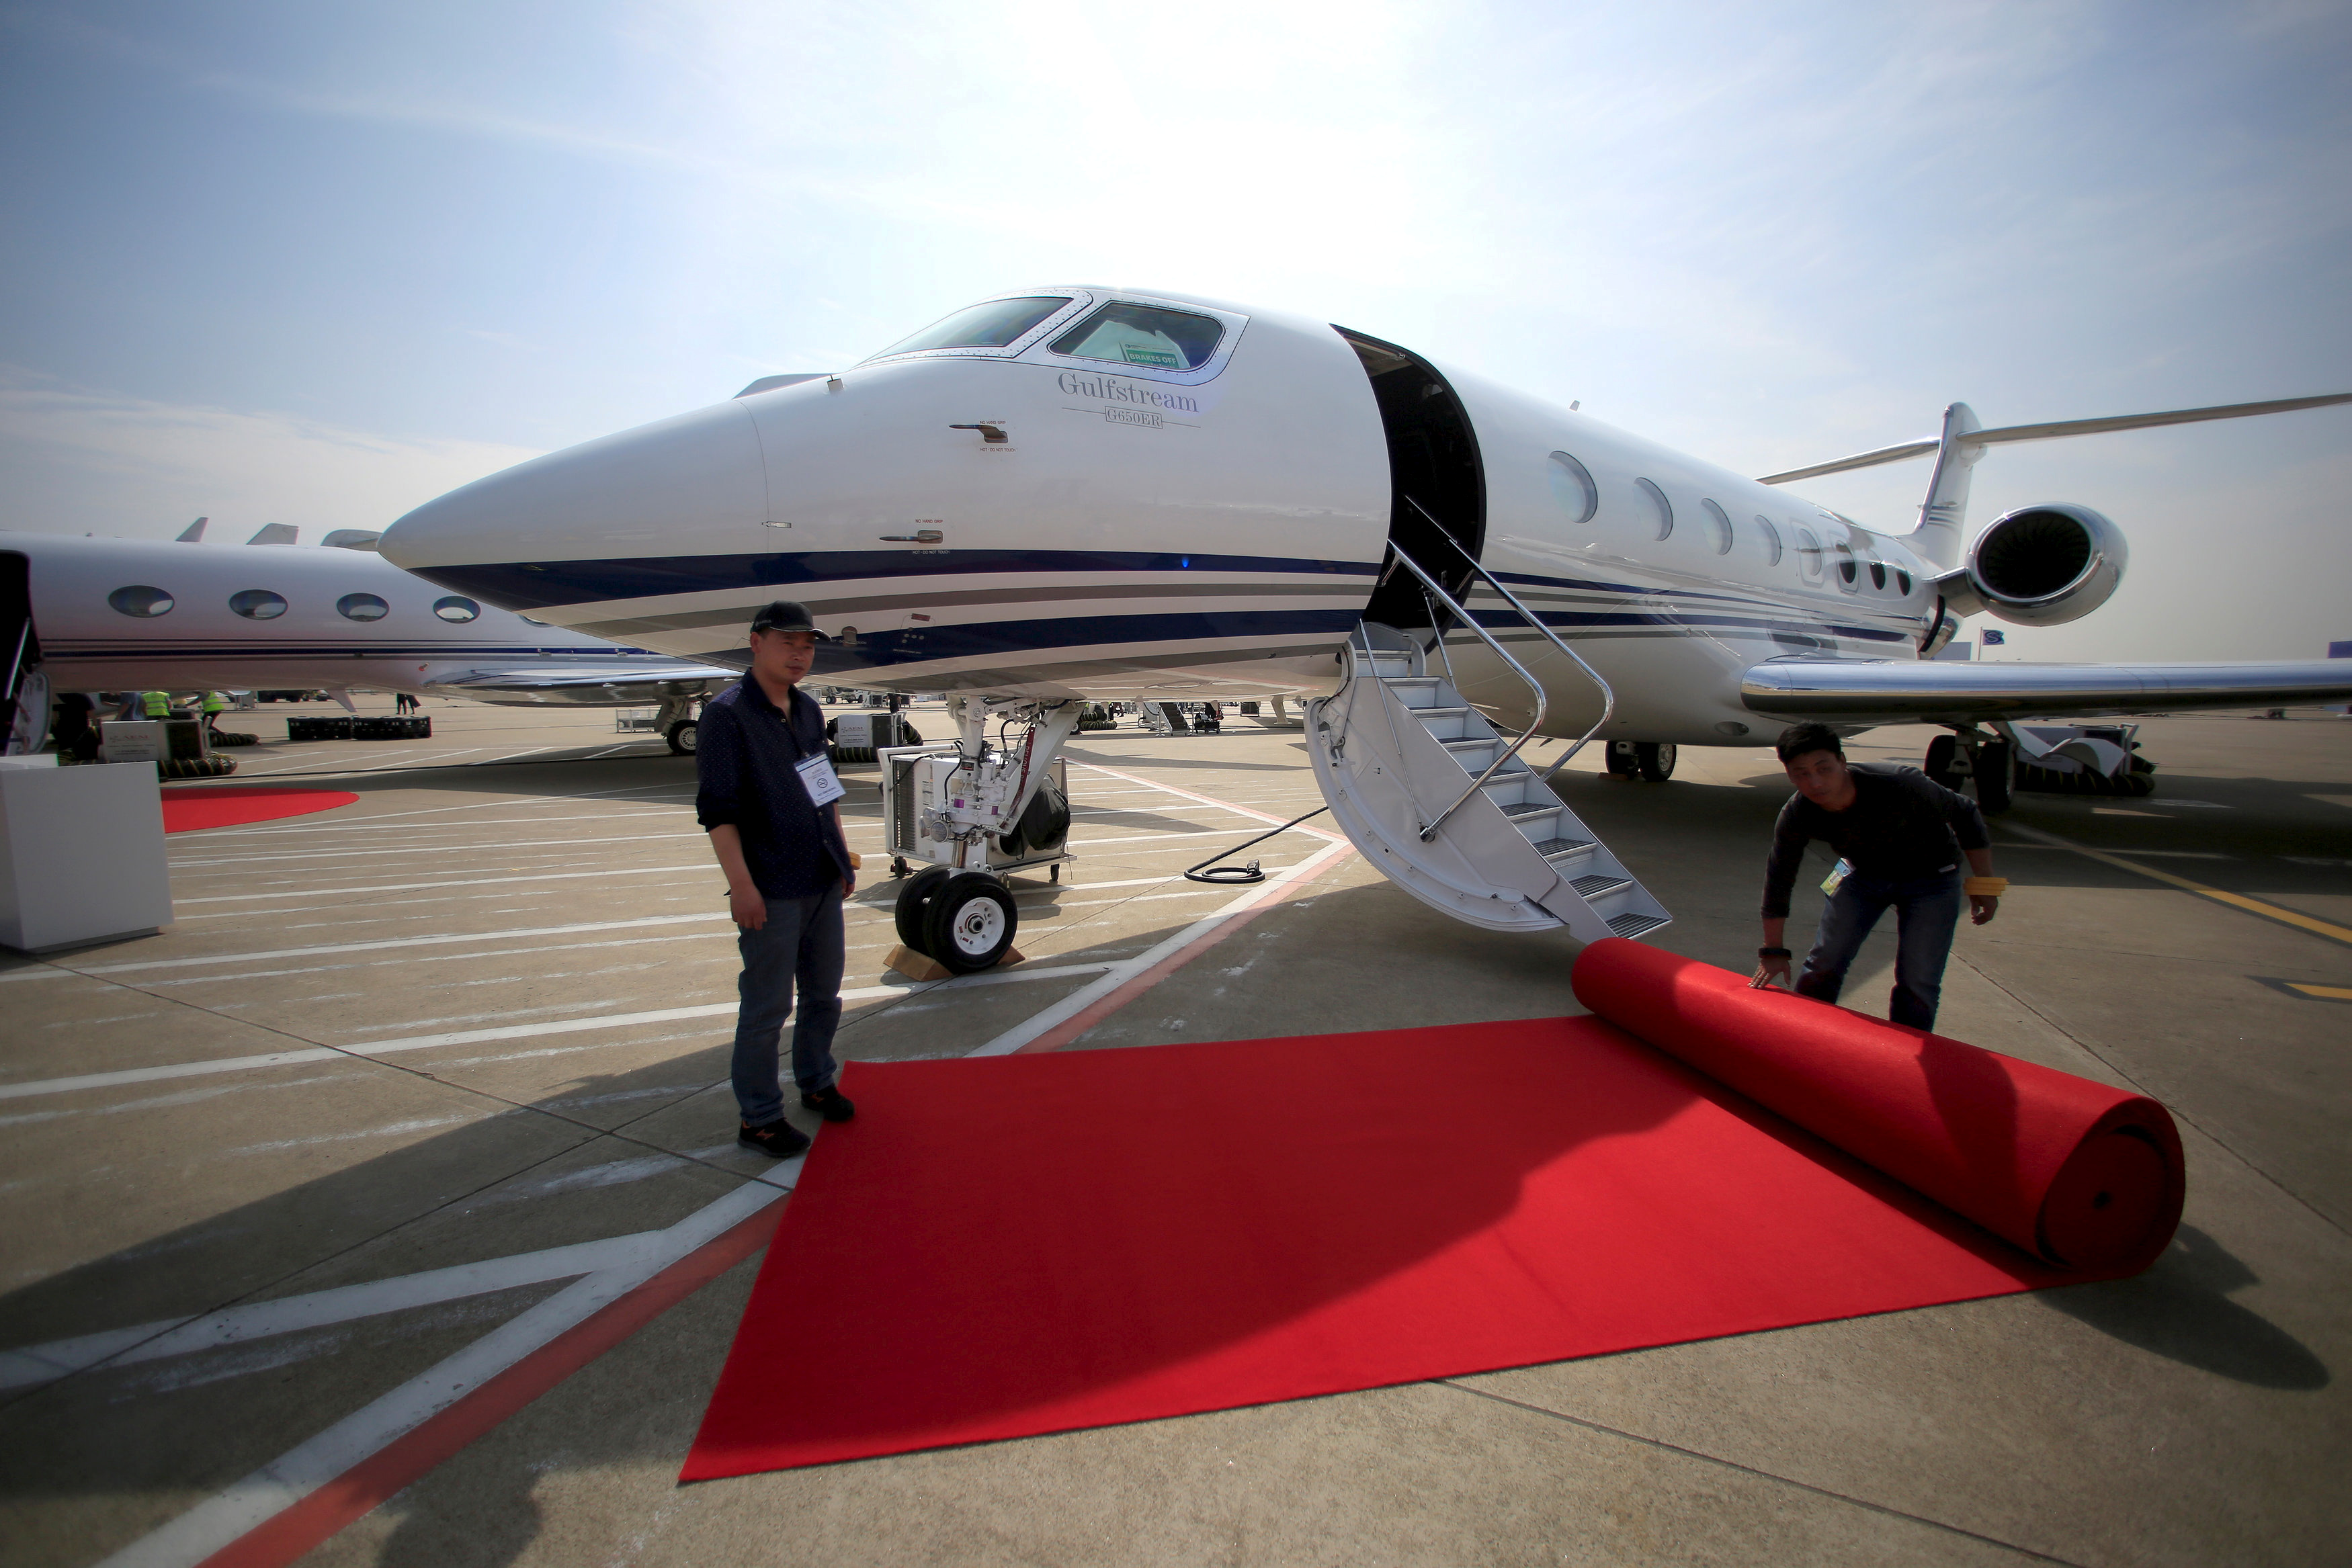 Workers prepare a red carpet in front a Gulfstream aircraft in a file photo.   REUTERS/Aly Song